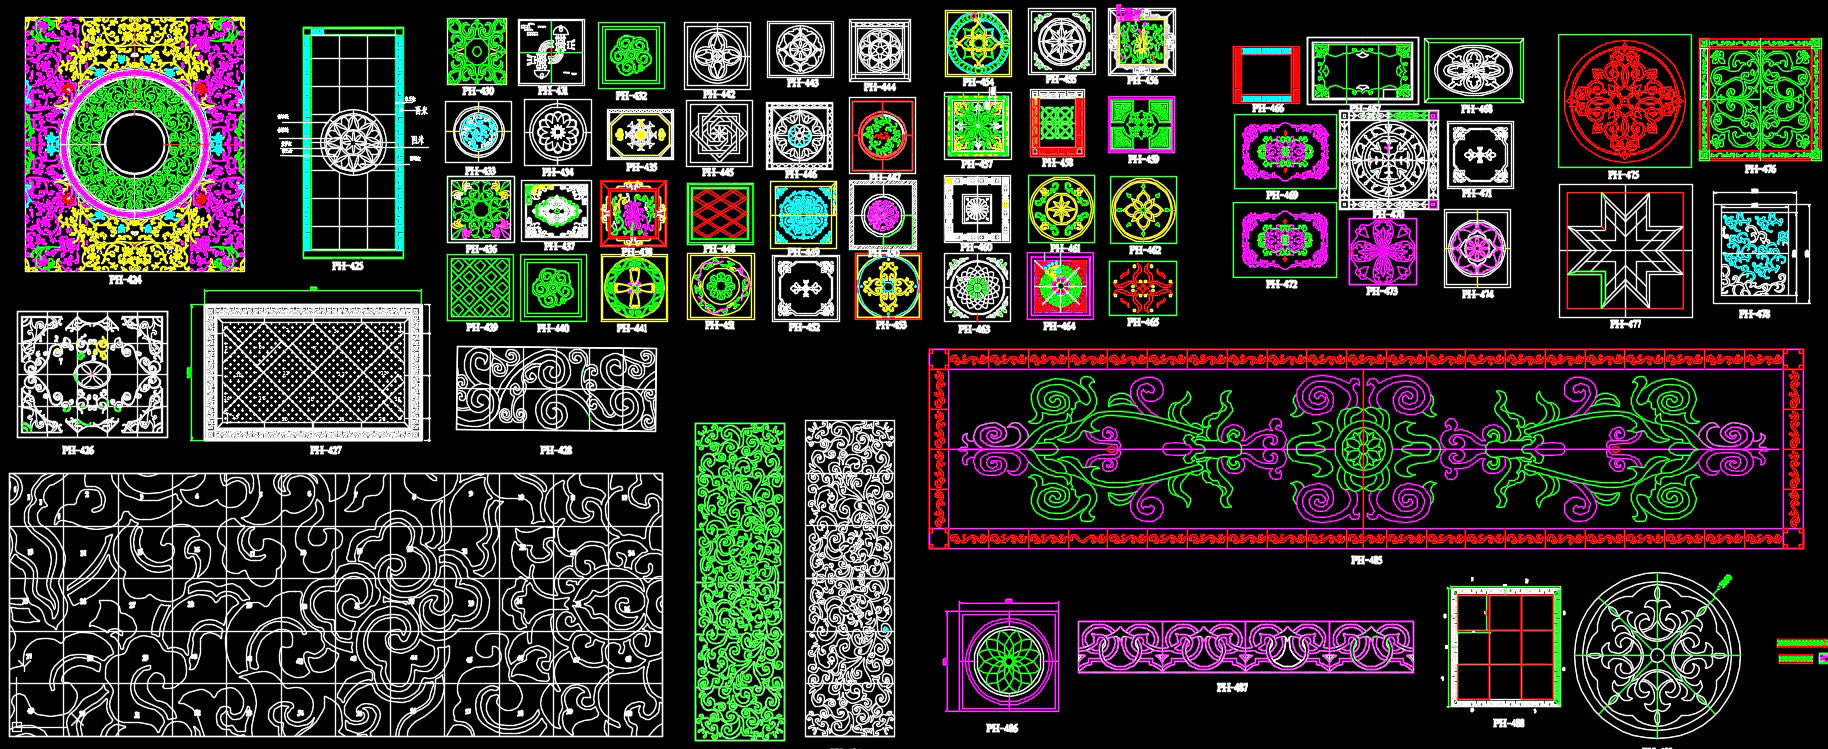 639 Types of Paving Design CAD Blocks